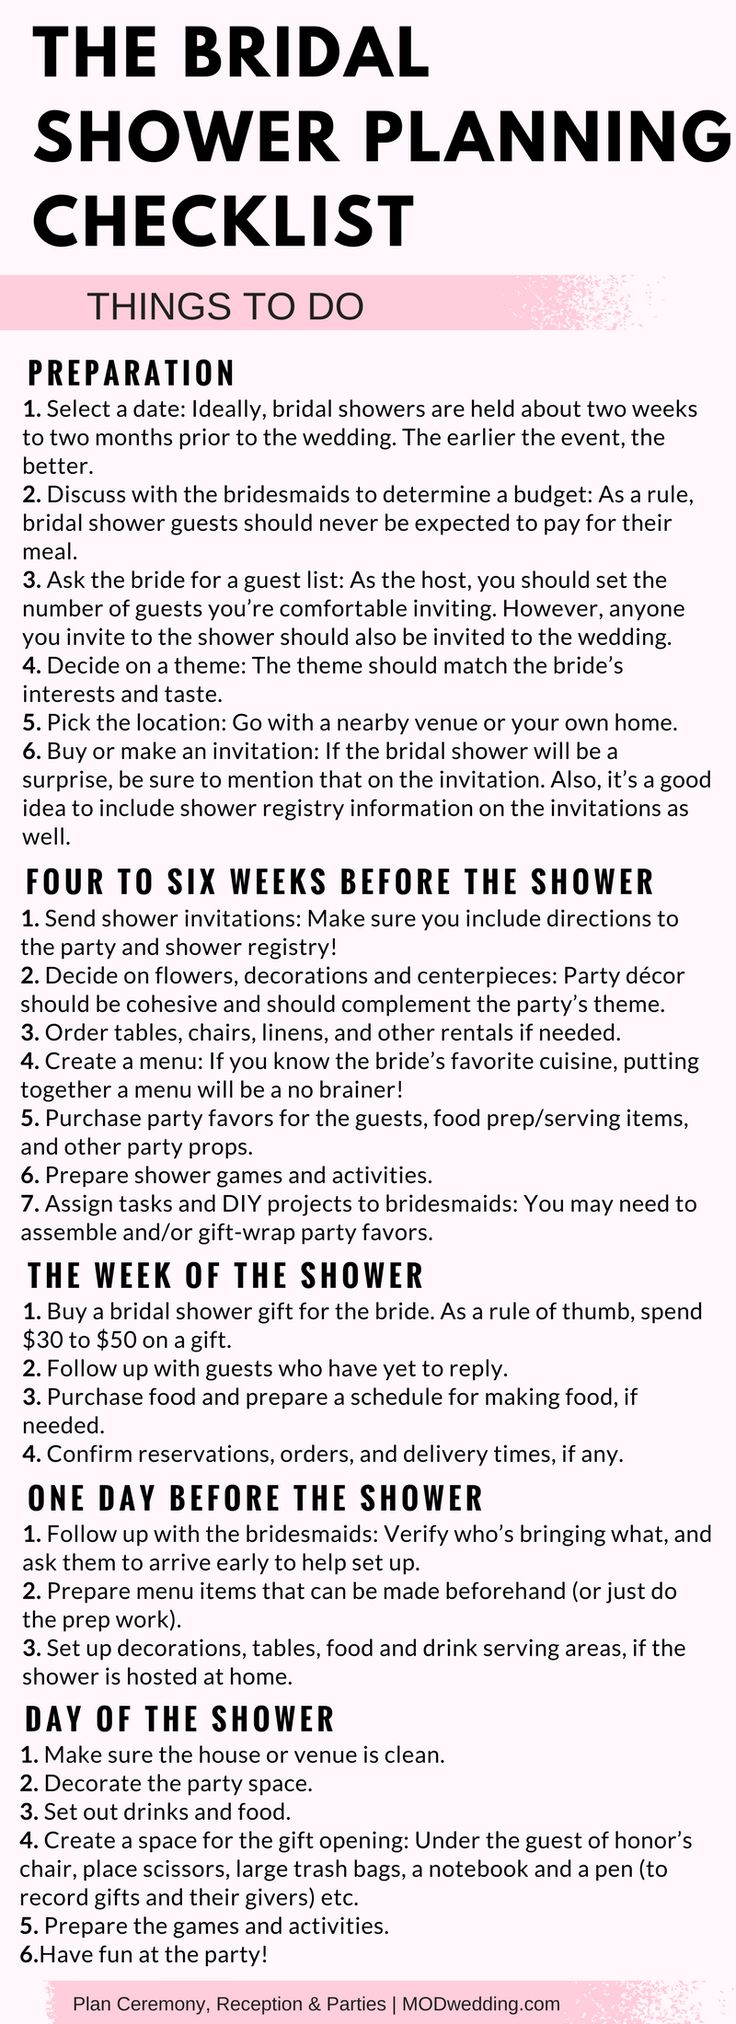 Tactueux image with regard to bridal shower checklist printable